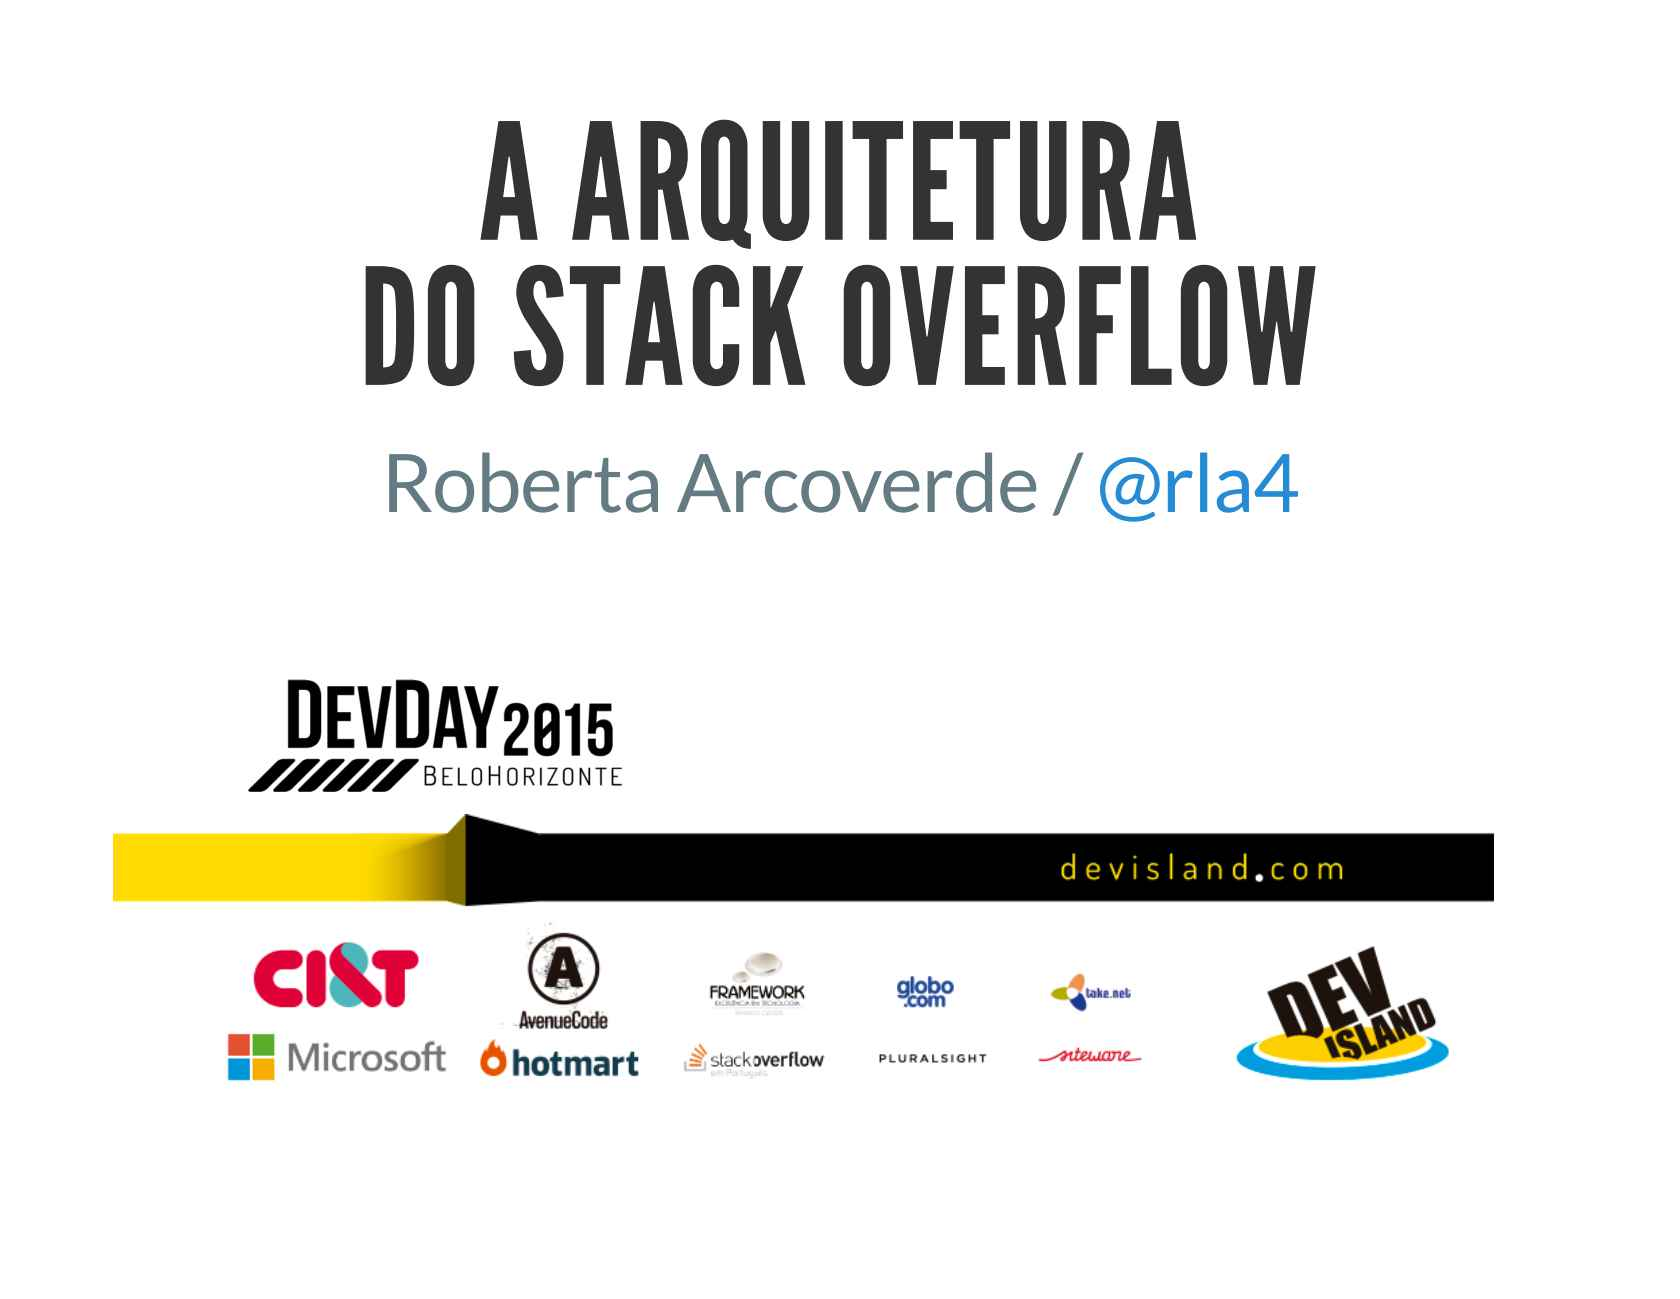 A Arquitetura (Peculiar) do Stack Overflow